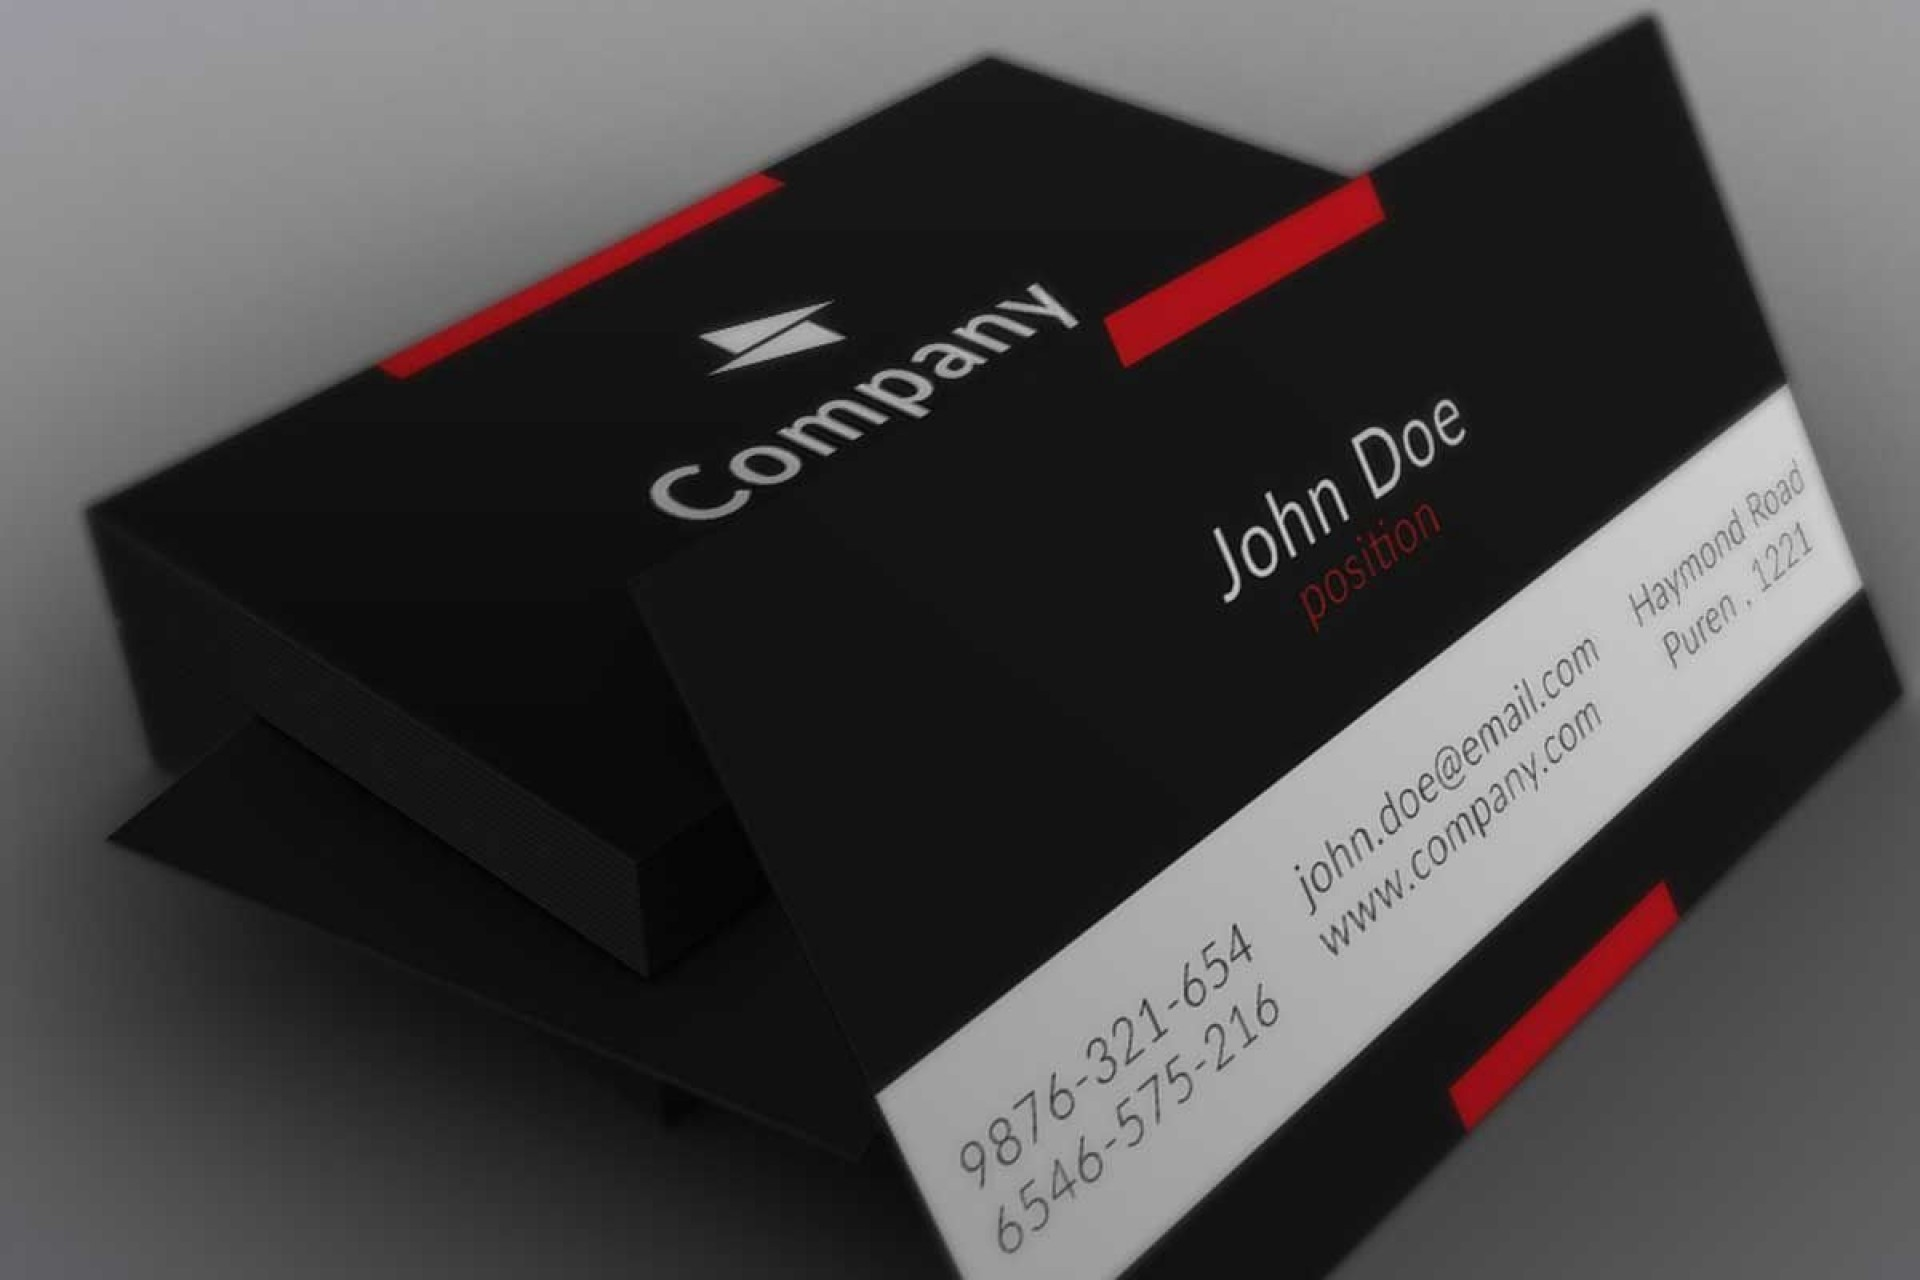 004 Impressive Free Adobe Photoshop Busines Card Template High Def  Templates Download1920